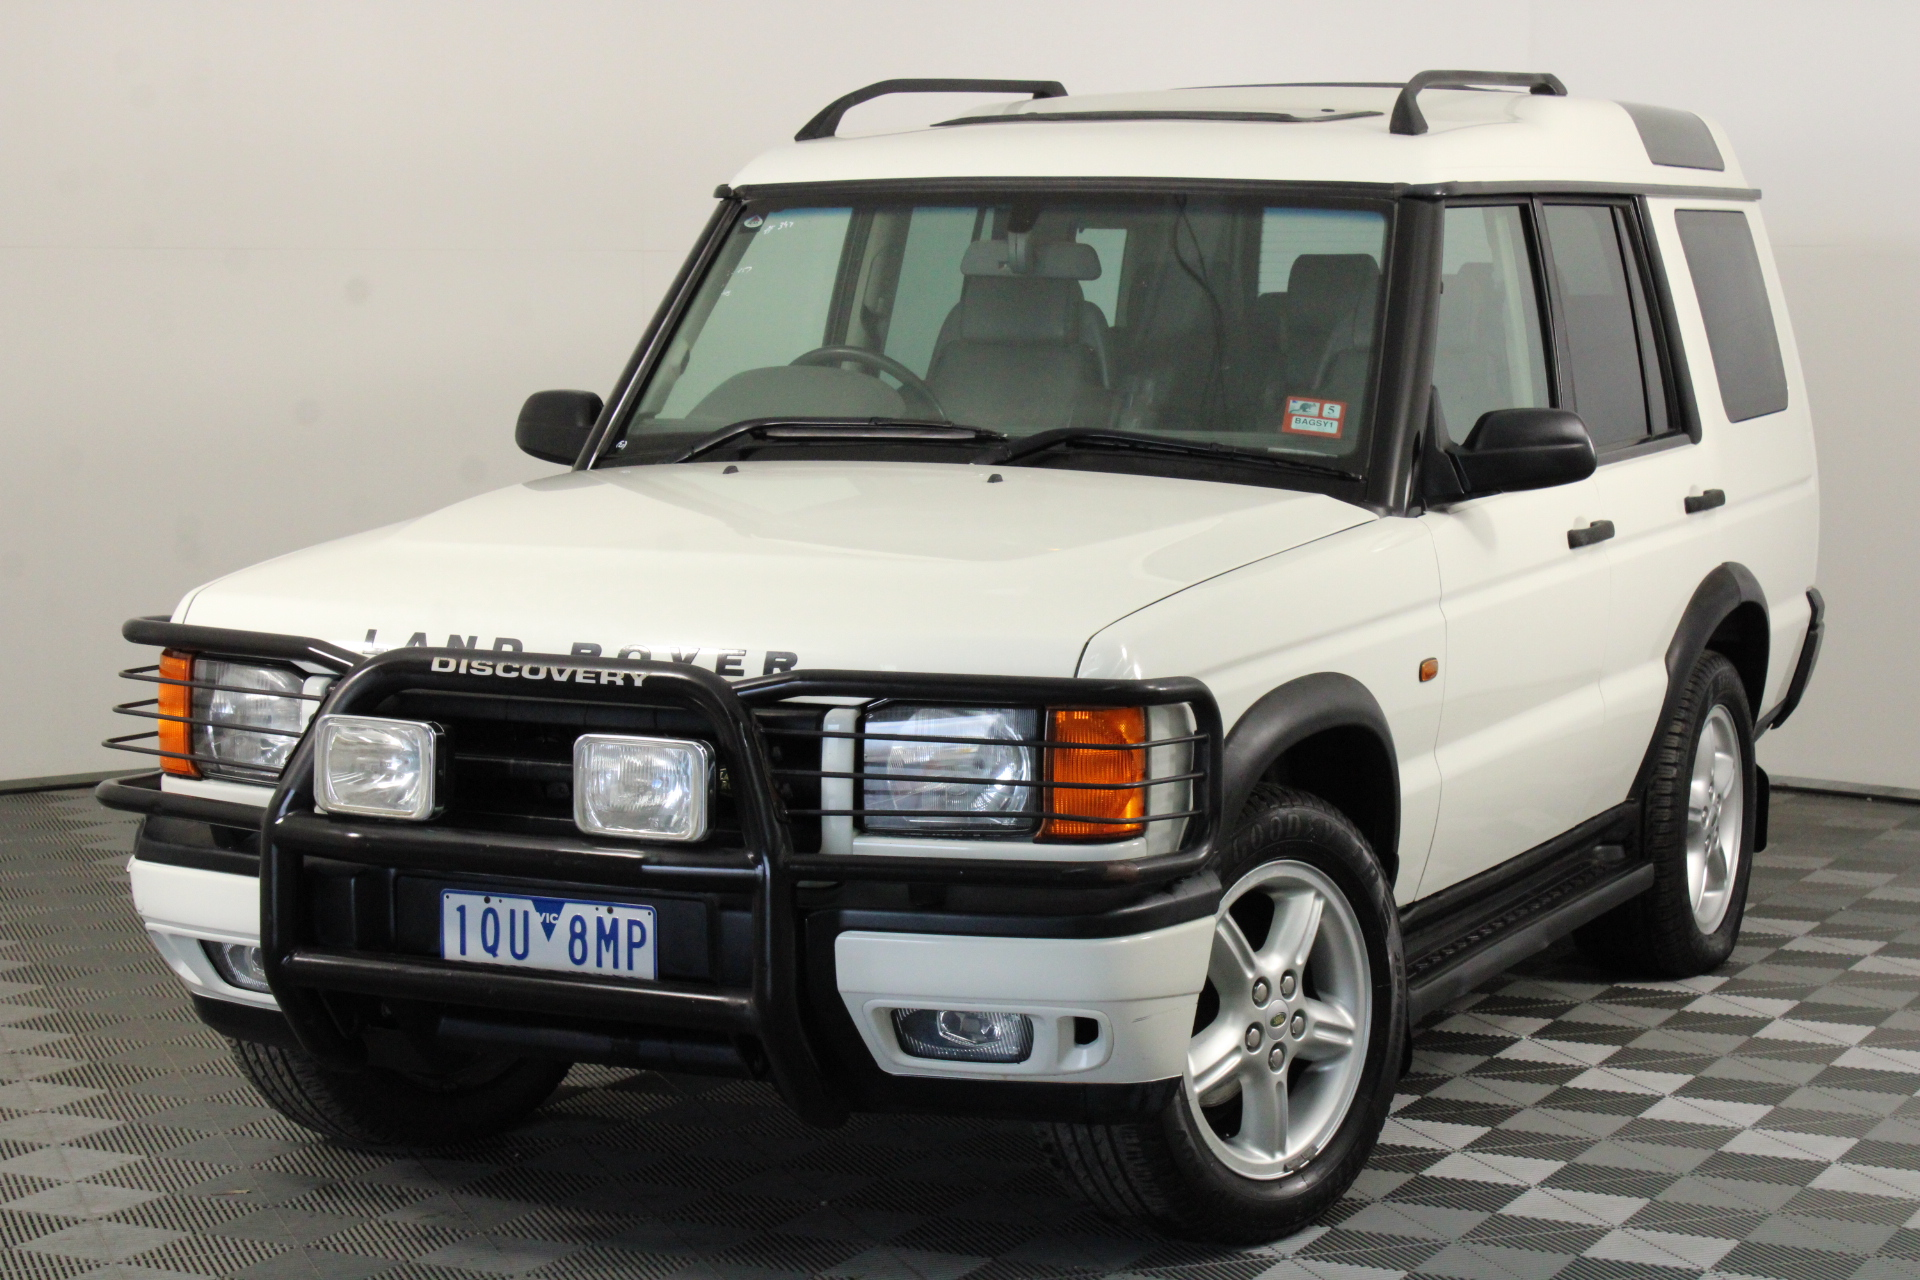 2001 Land Rover Discovery ES V8 (4x4) Automatic 7 Seats Wagon